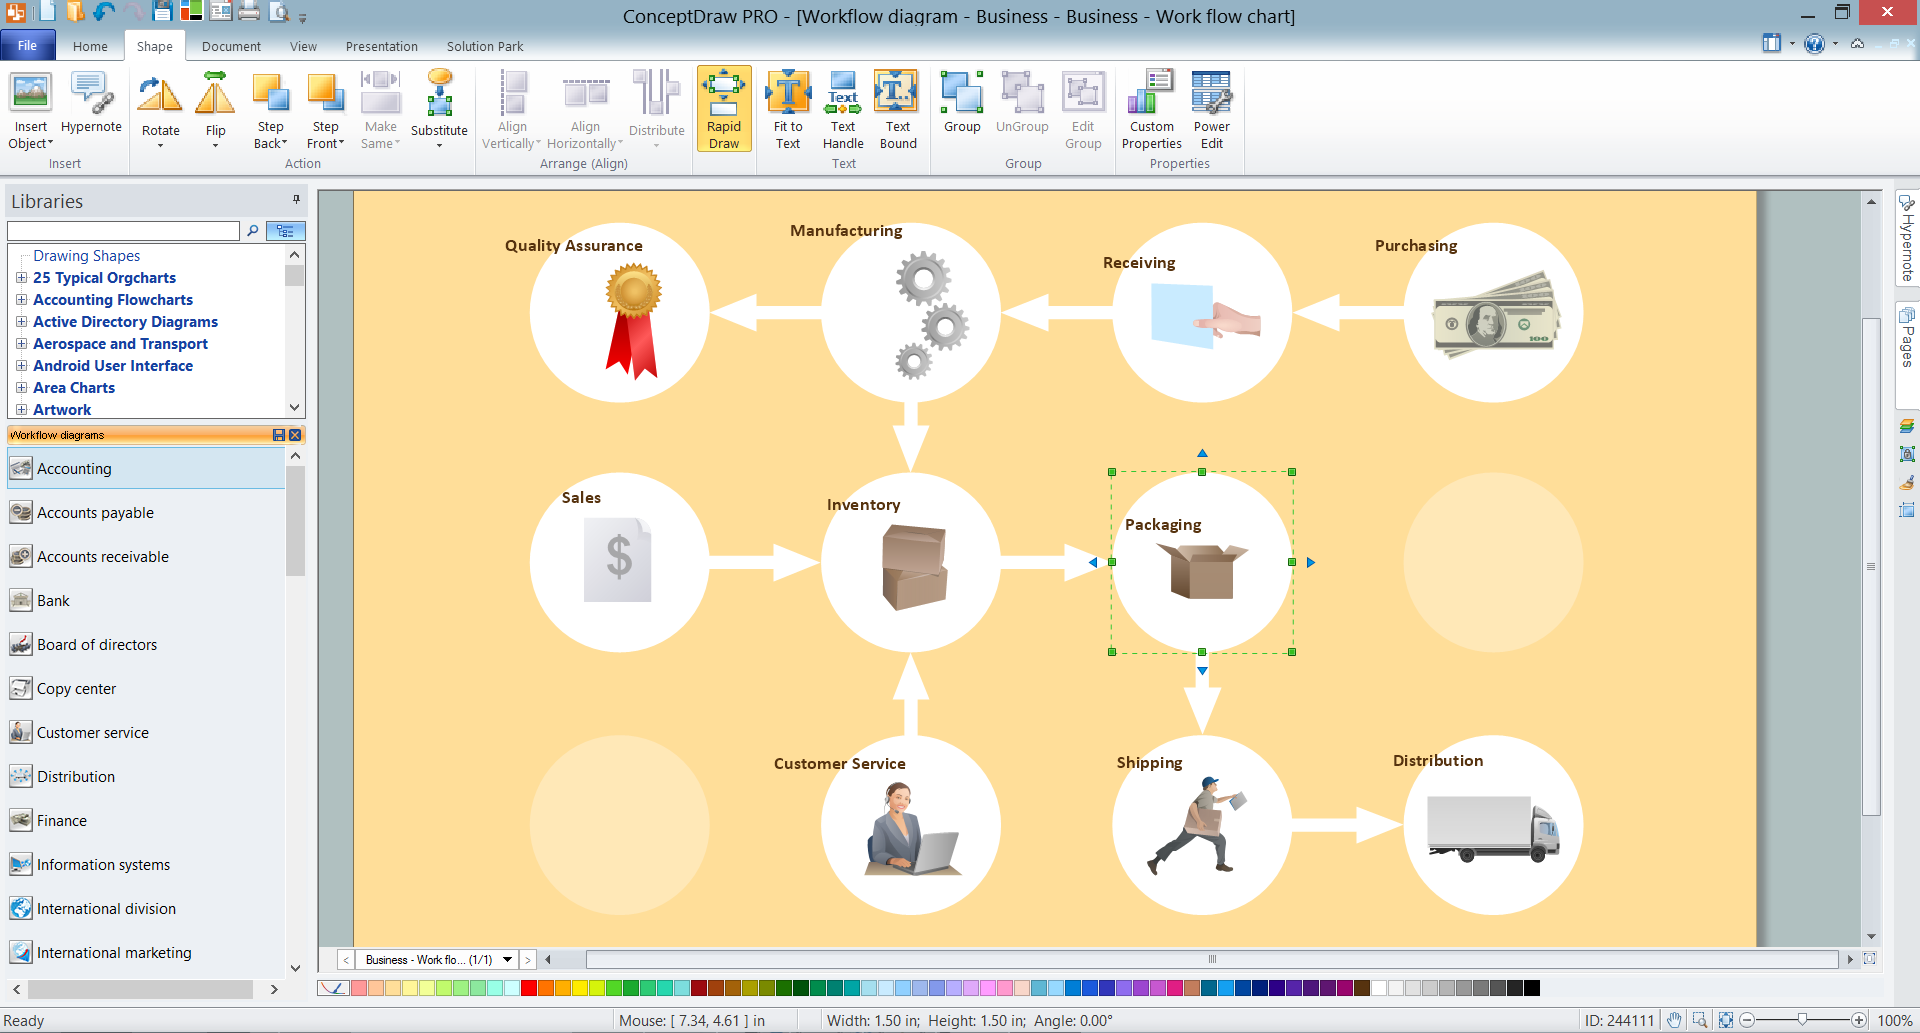 RapidDraw for Workflow Diagram Design